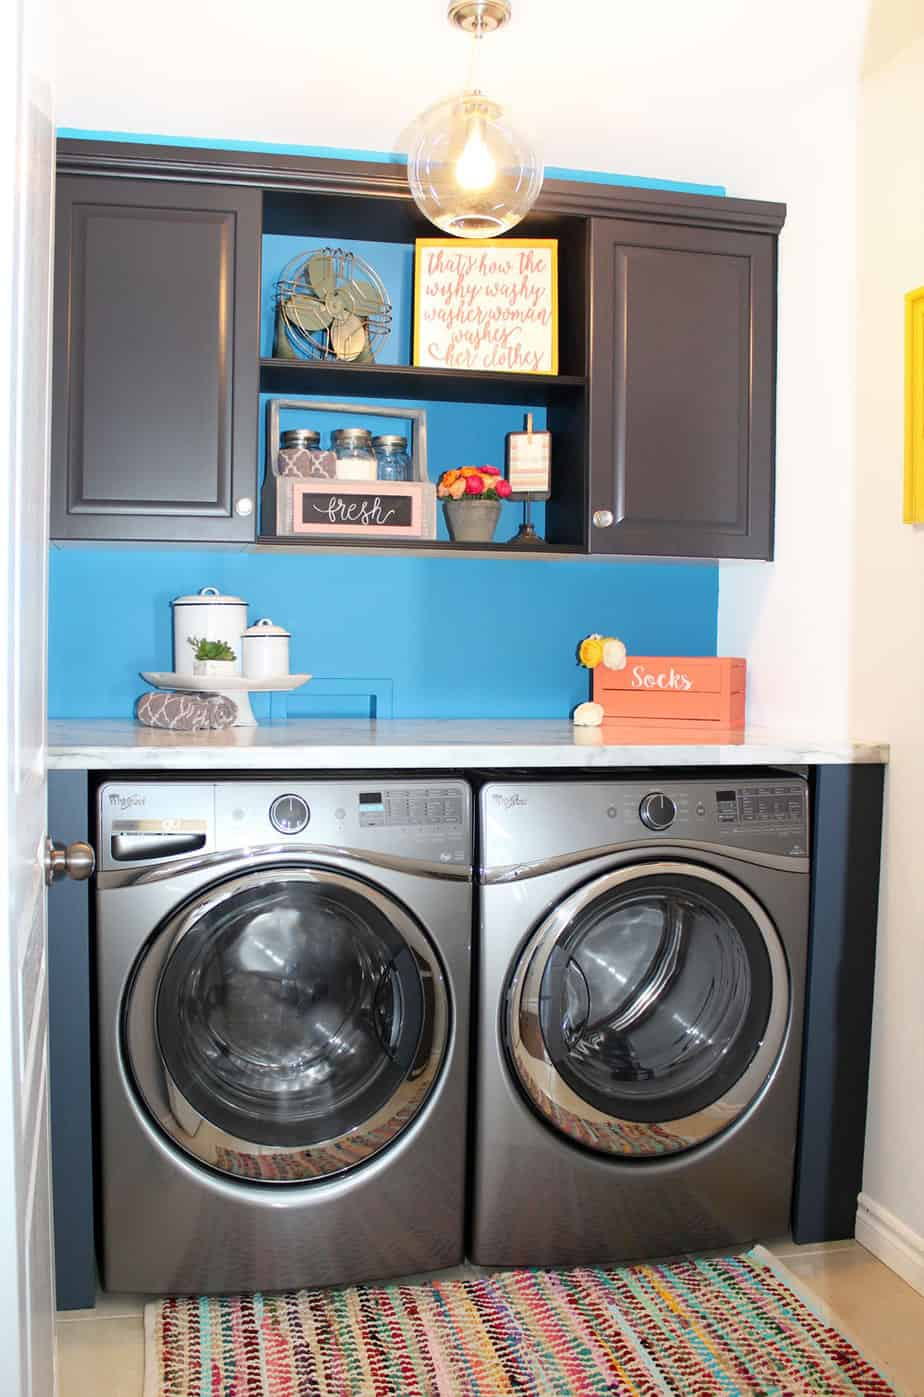 The big reveal simple laundry room ideas fynes designs for Laundry room design ideas